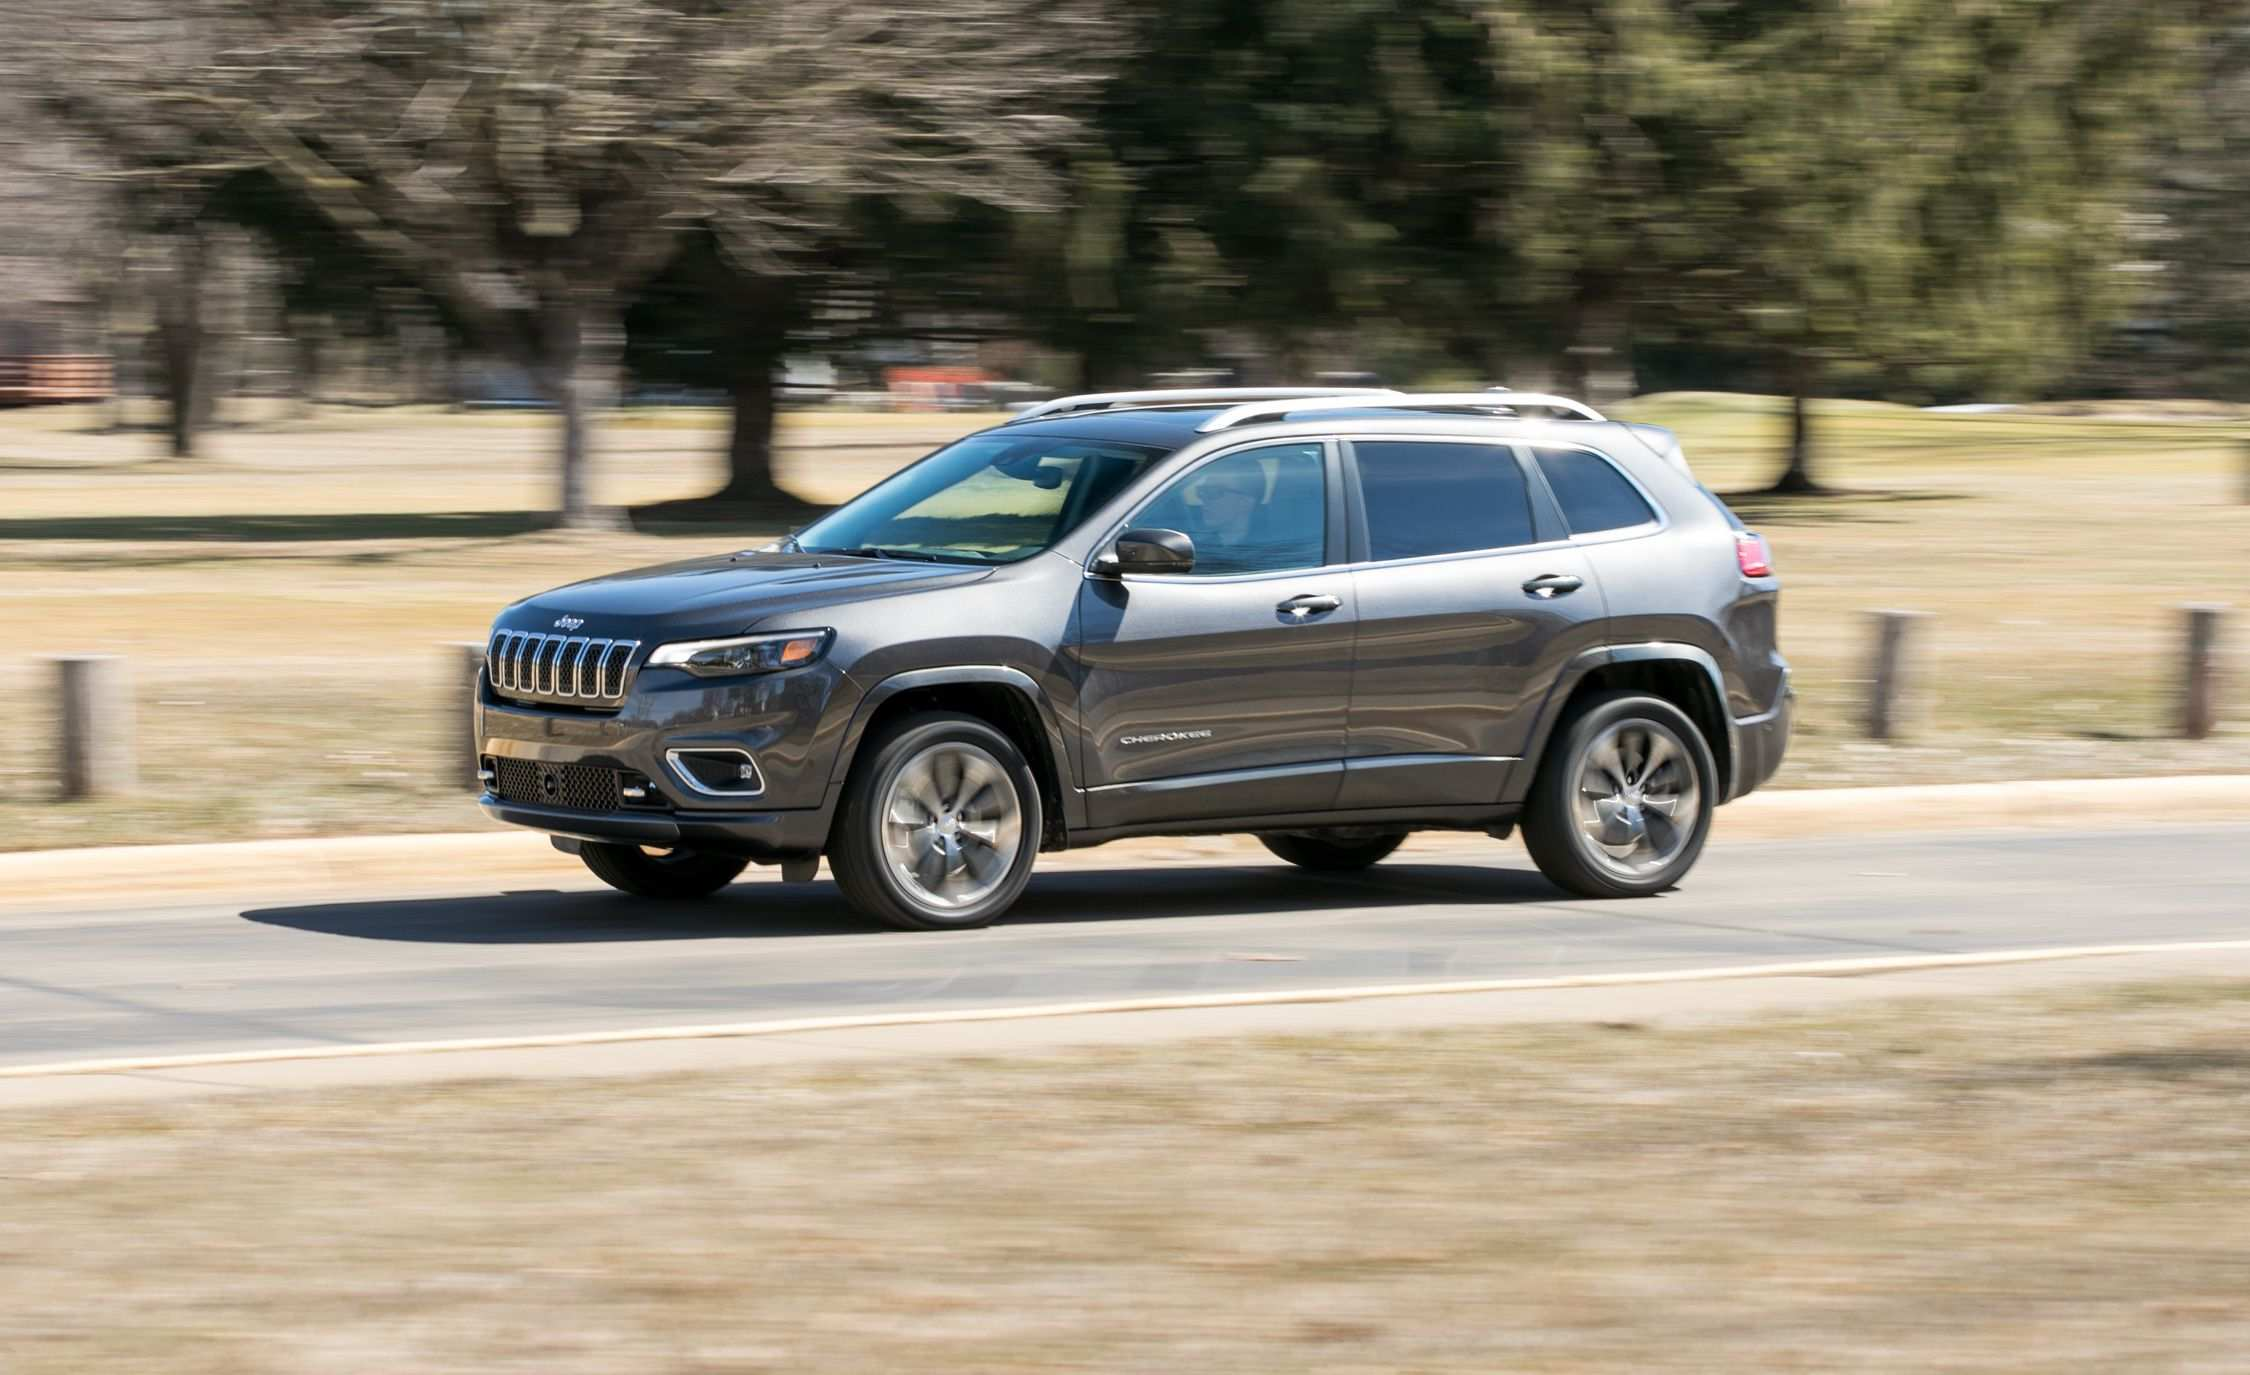 35 All New New 2019 Jeep Cherokee Horsepower Release Specs And Review Concept with New 2019 Jeep Cherokee Horsepower Release Specs And Review